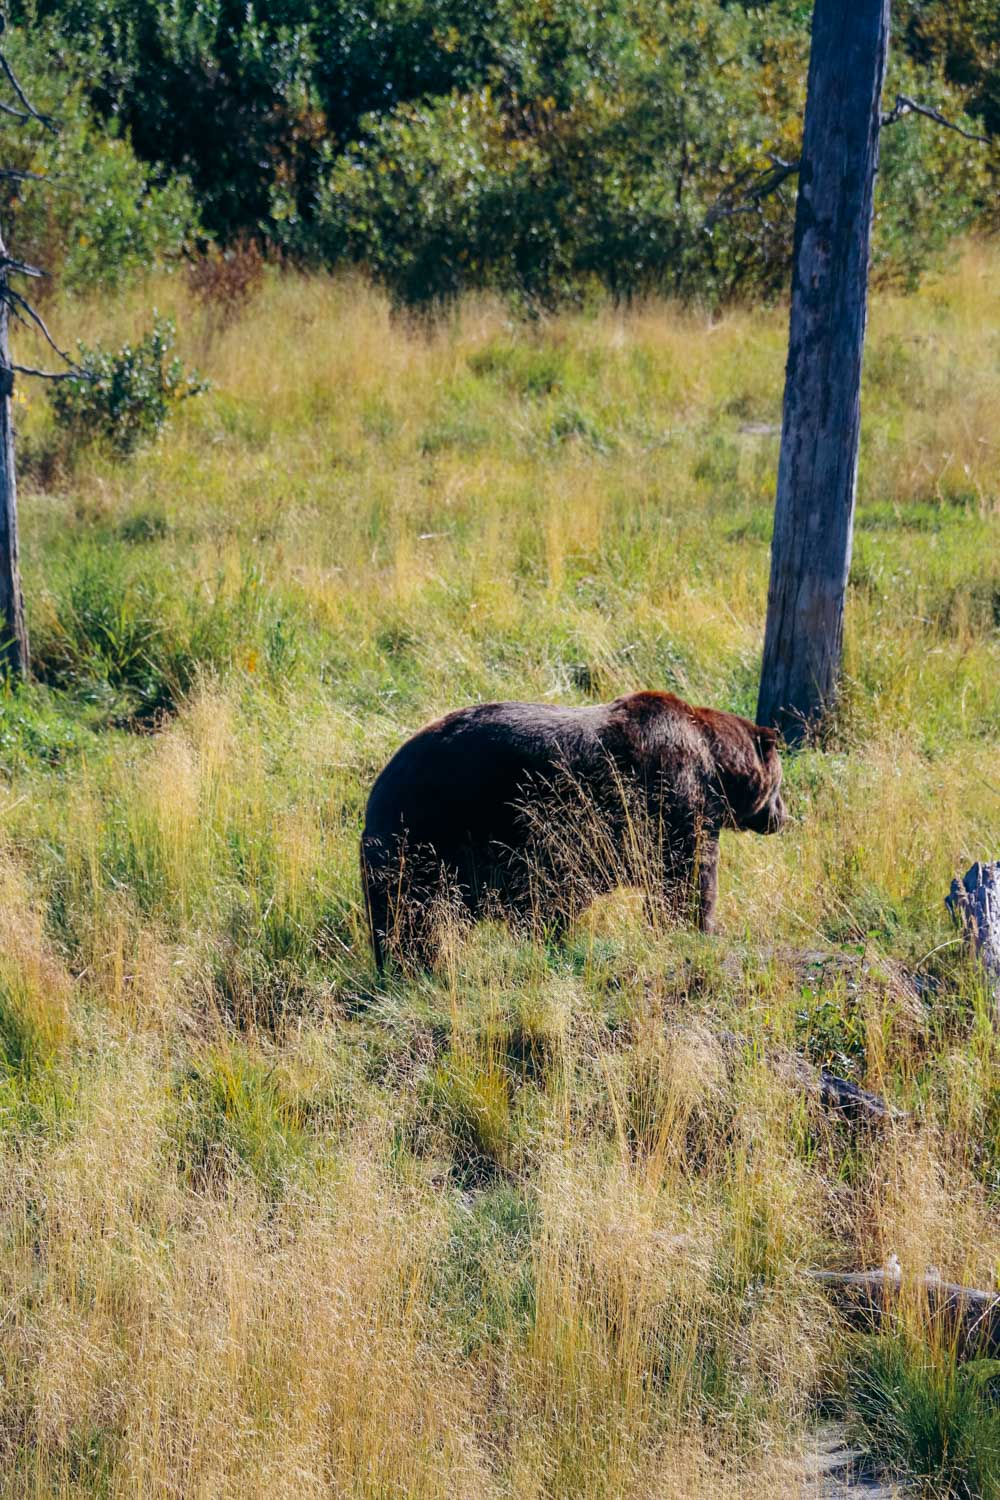 Bear safety in the wild - Roads and Destinations